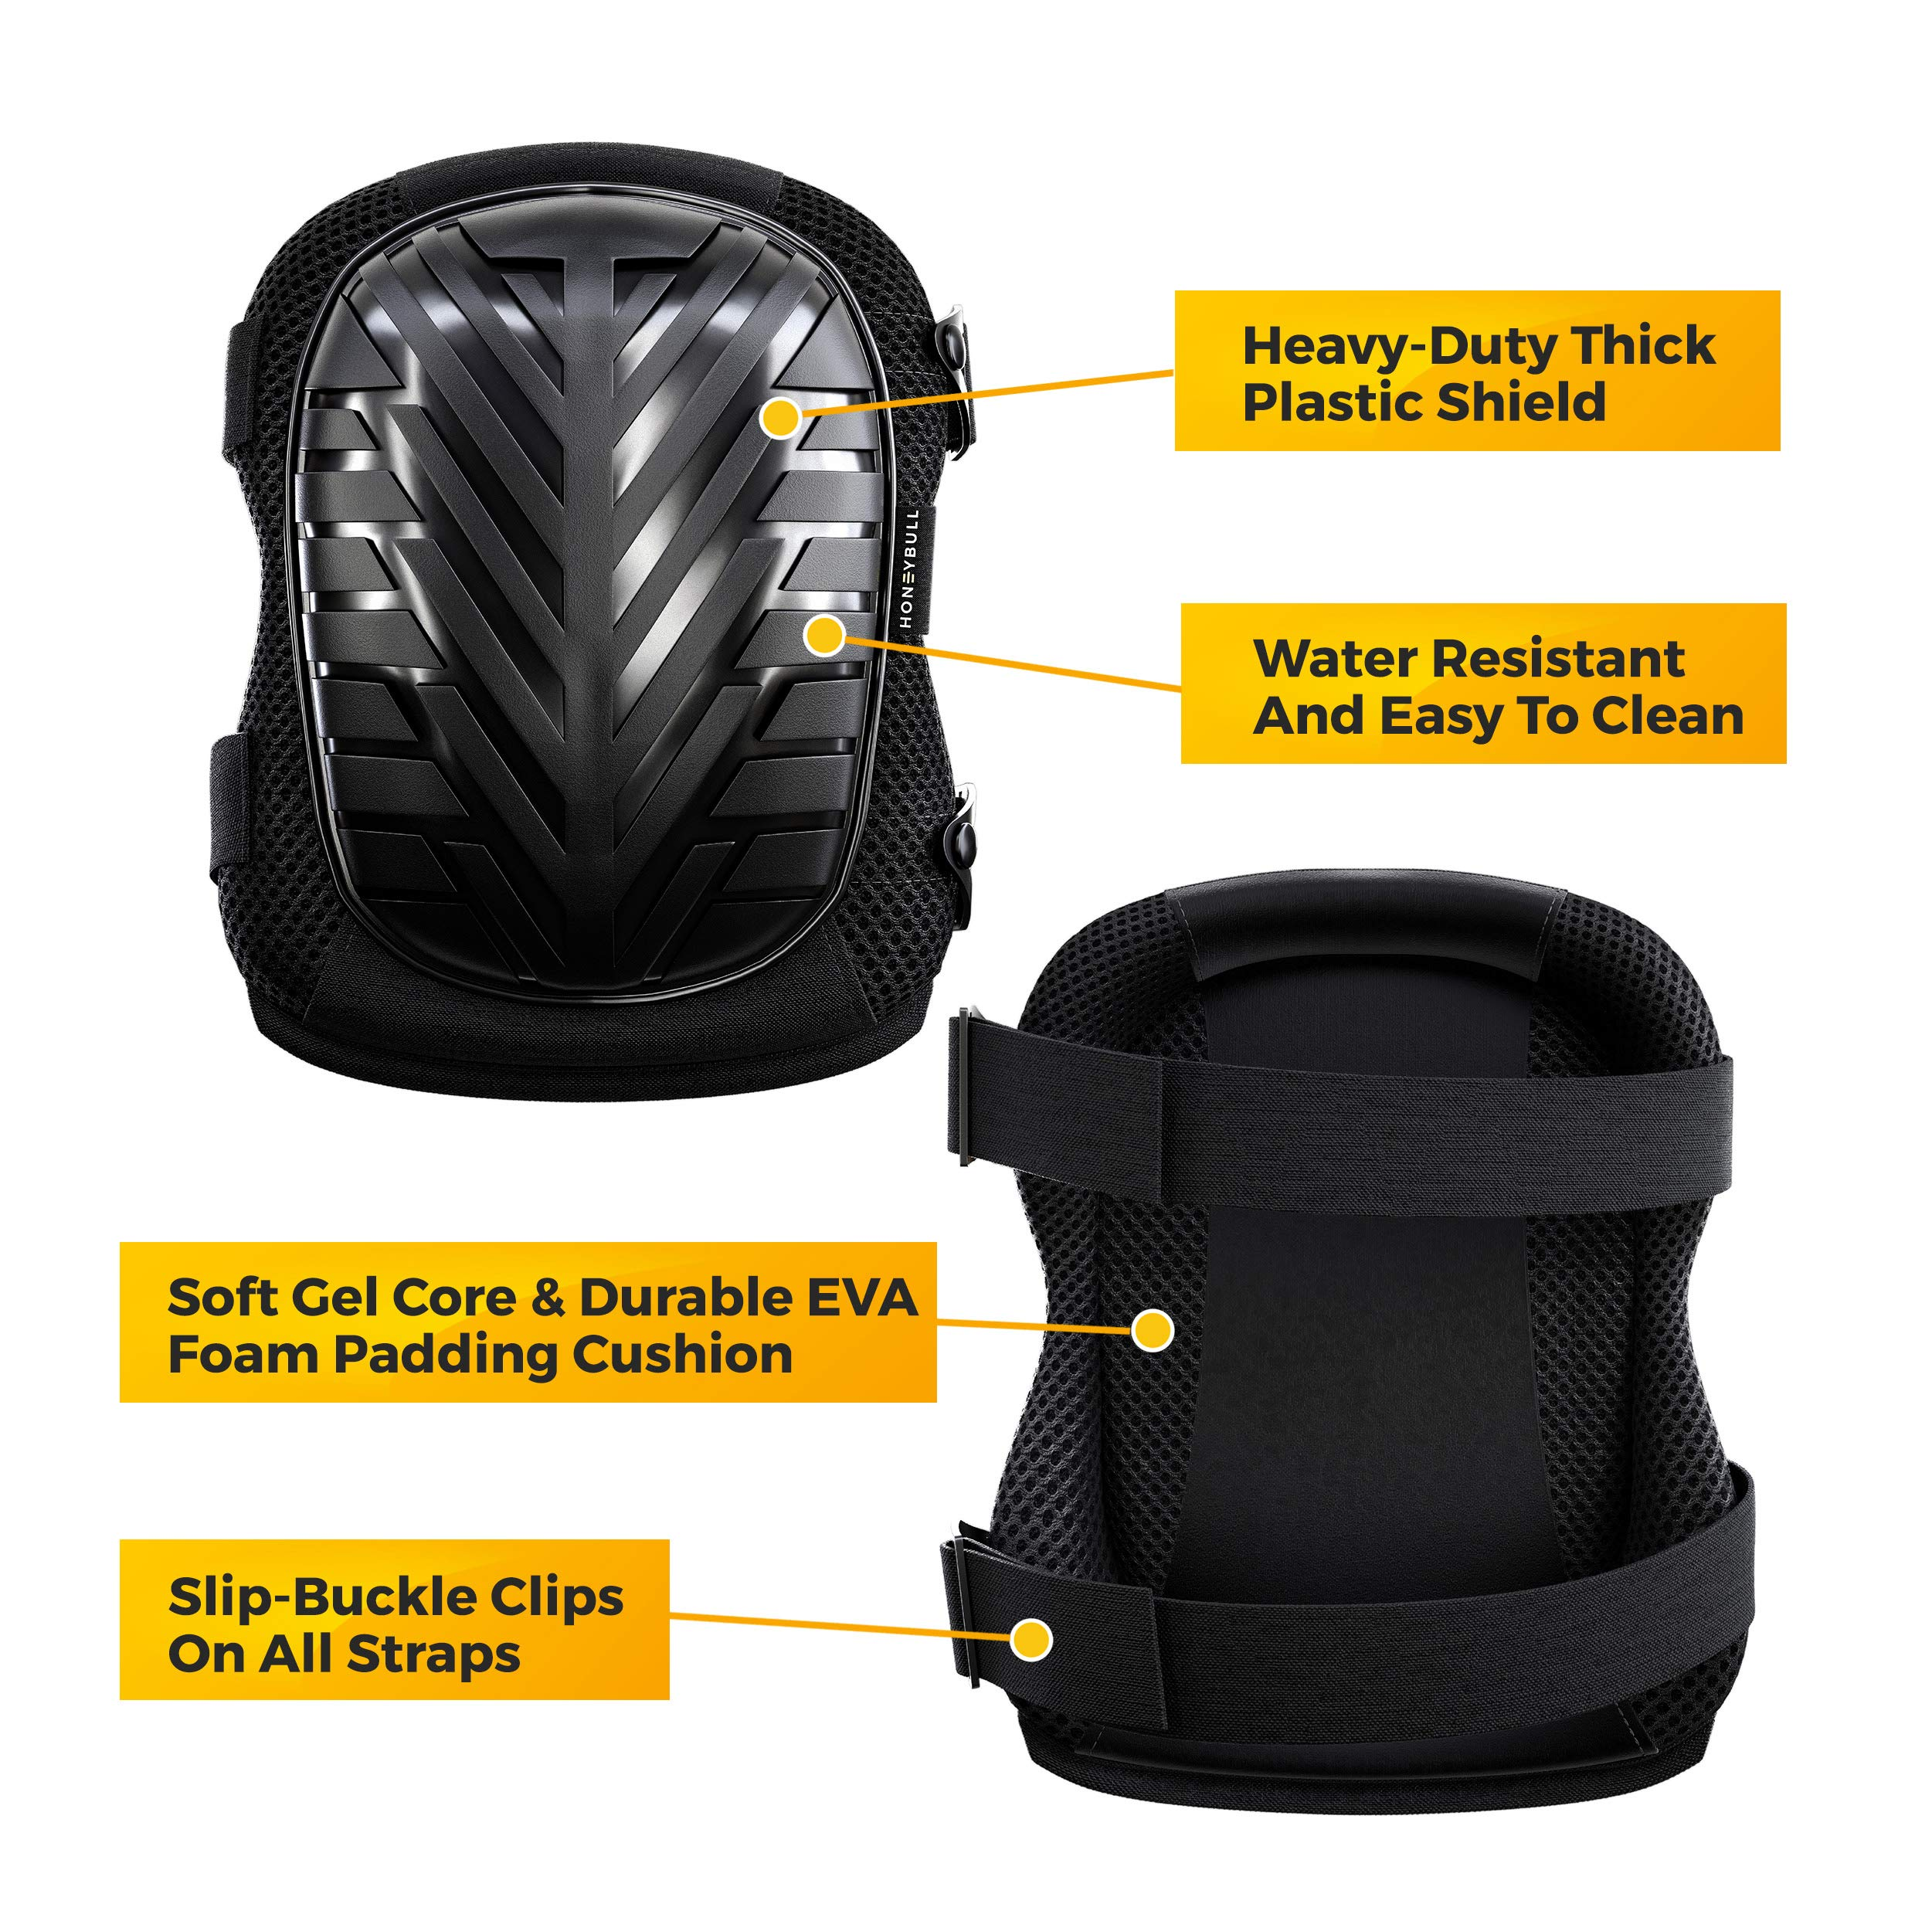 HONEYBULL Knee Pads for Work with Foam Pads - Universal Fit (1 Pair) by HONEYBULL (Image #6)